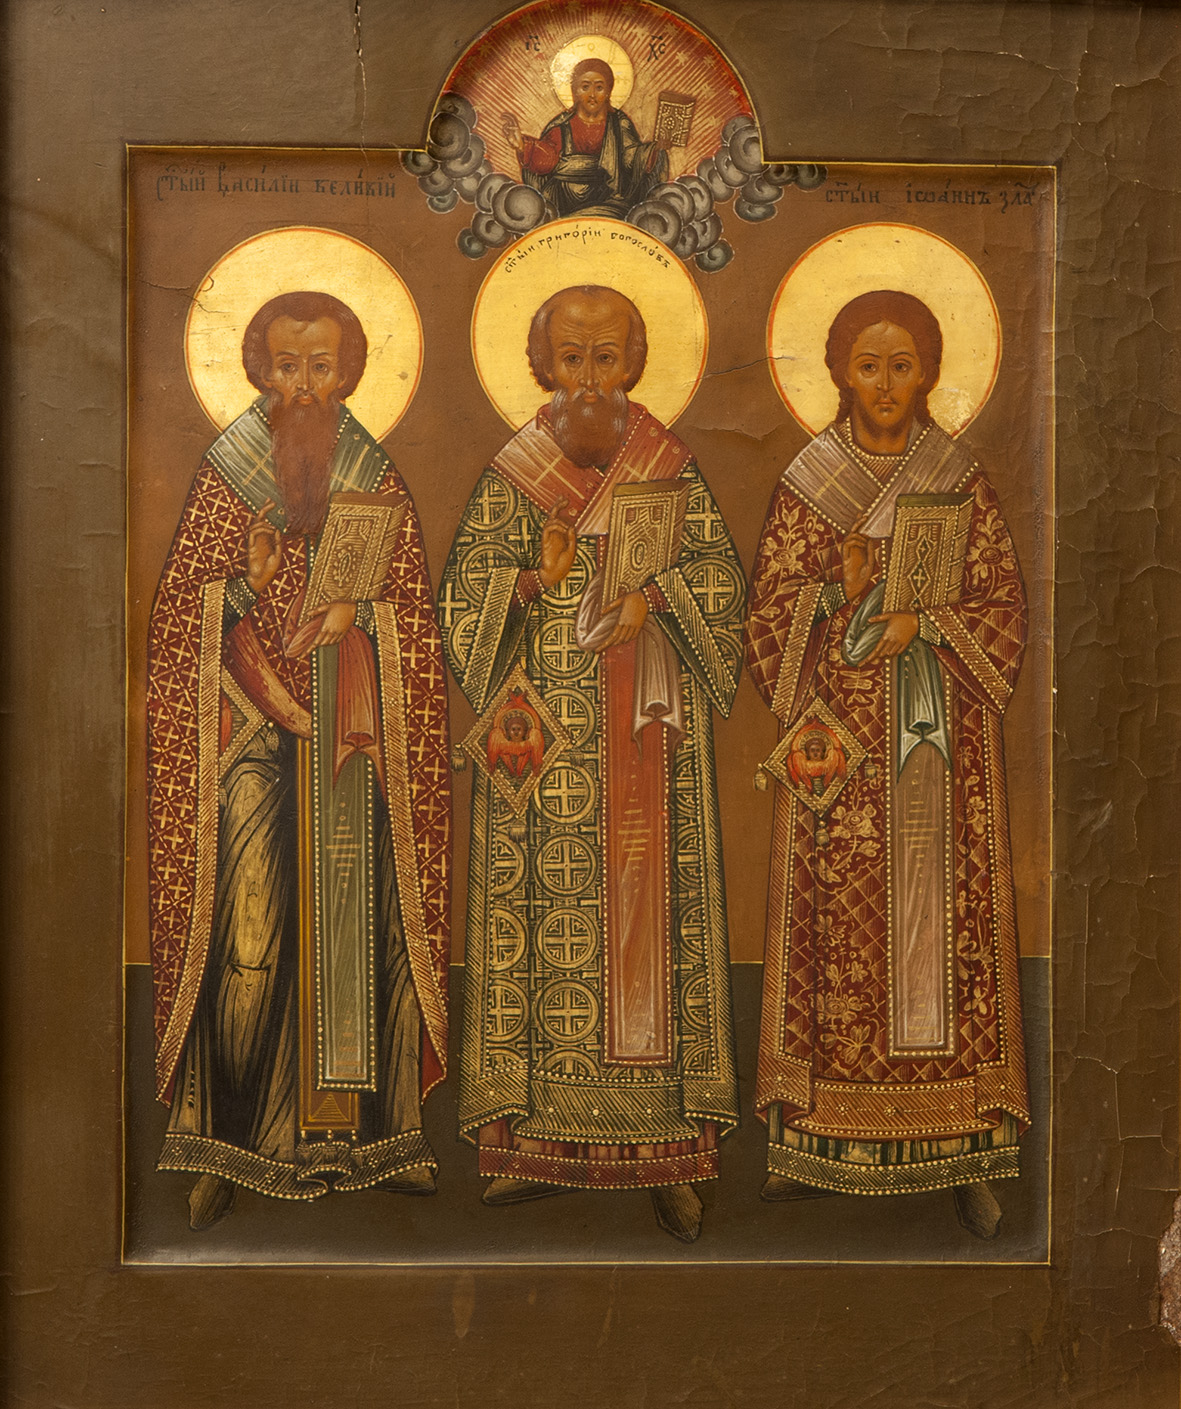 Three Saints. Basil the Great, Gregory the Theologian, John Chrysostom.